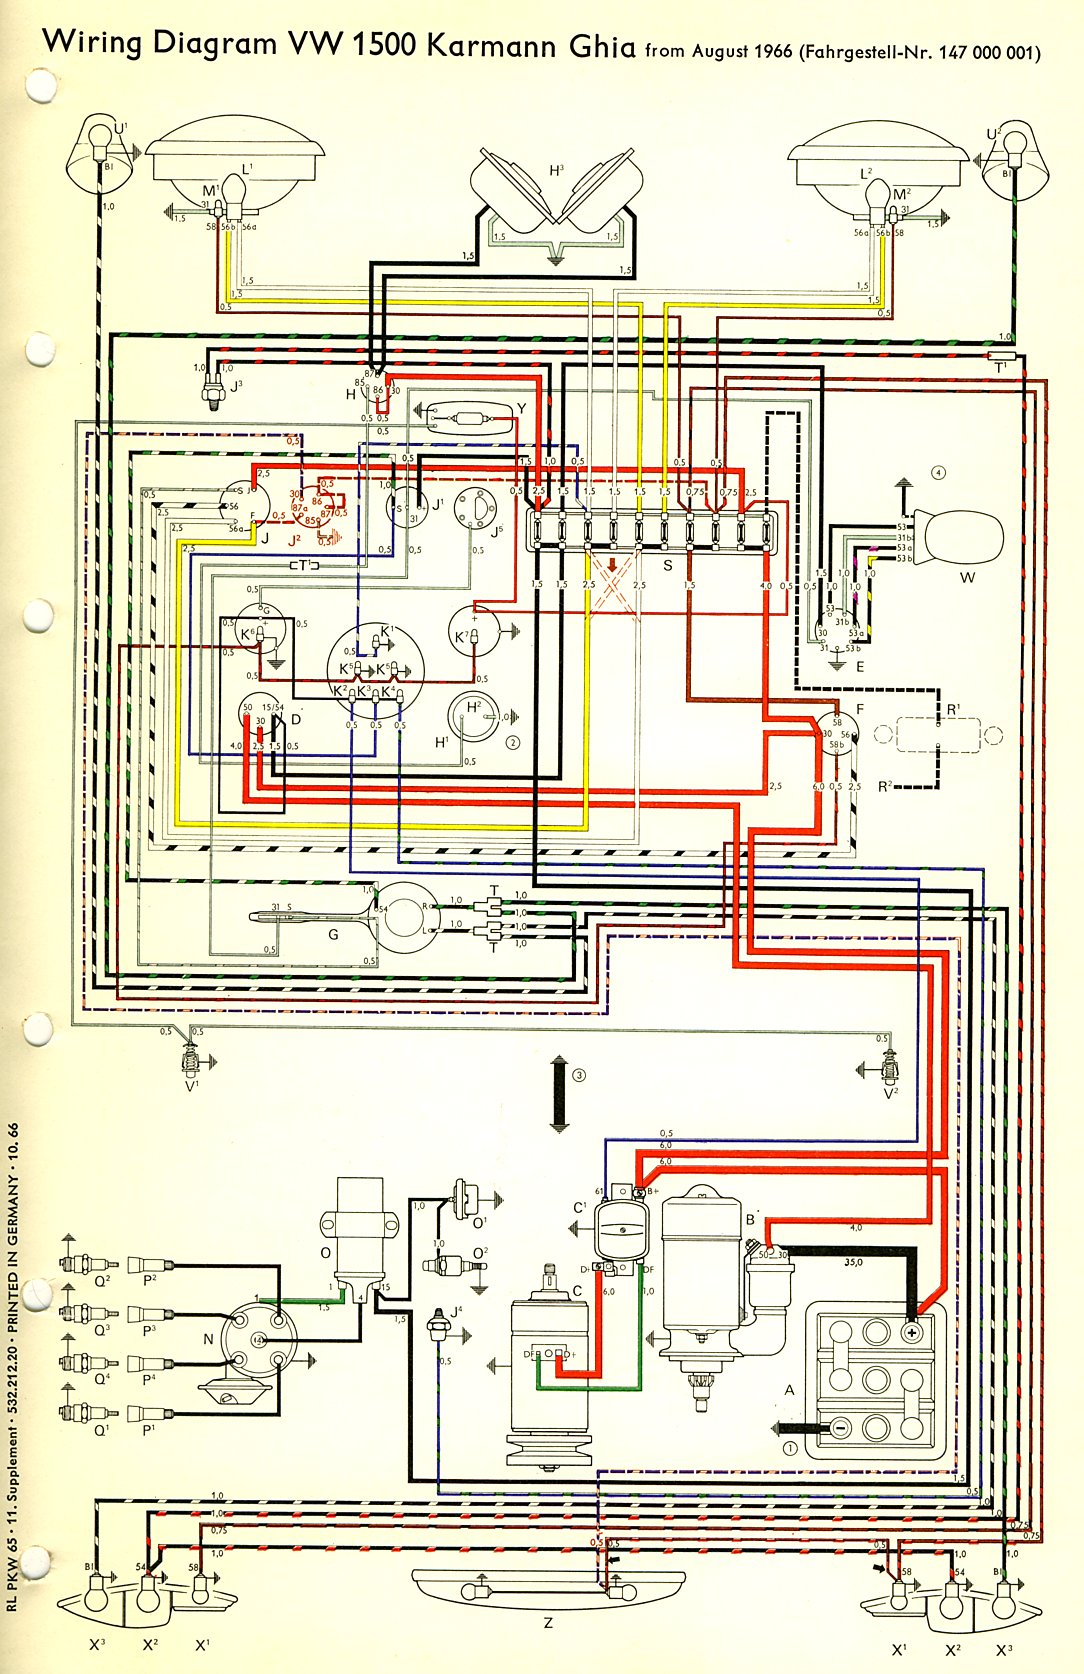 ghia_67 thesamba com karmann ghia wiring diagrams vw thing wiring diagram at nearapp.co